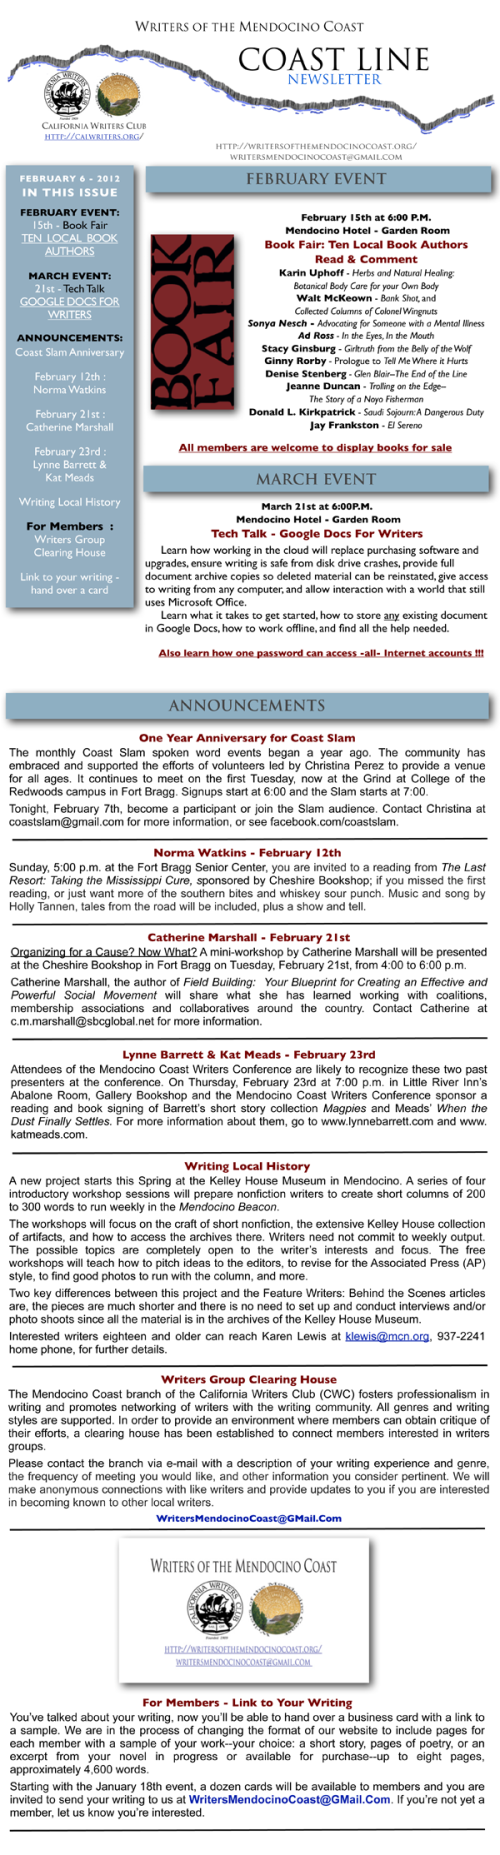 Writers of the Mendocino Coast - February Newsletter - 2012